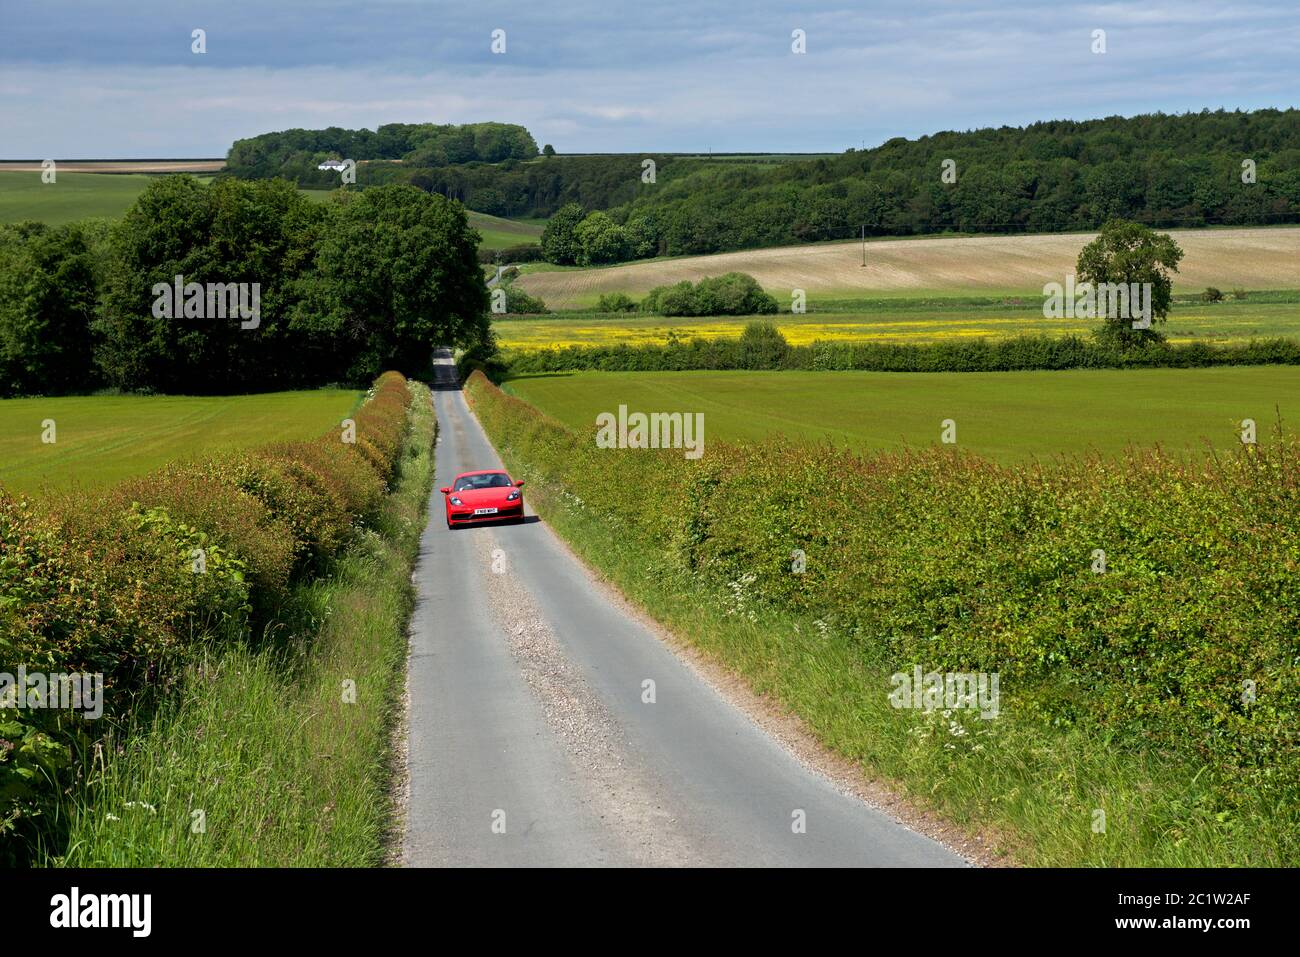 car-on-single-track-road-in-the-yorkshire-wolds-east-yorkshire-england-uk-2C1W2AF.jpg